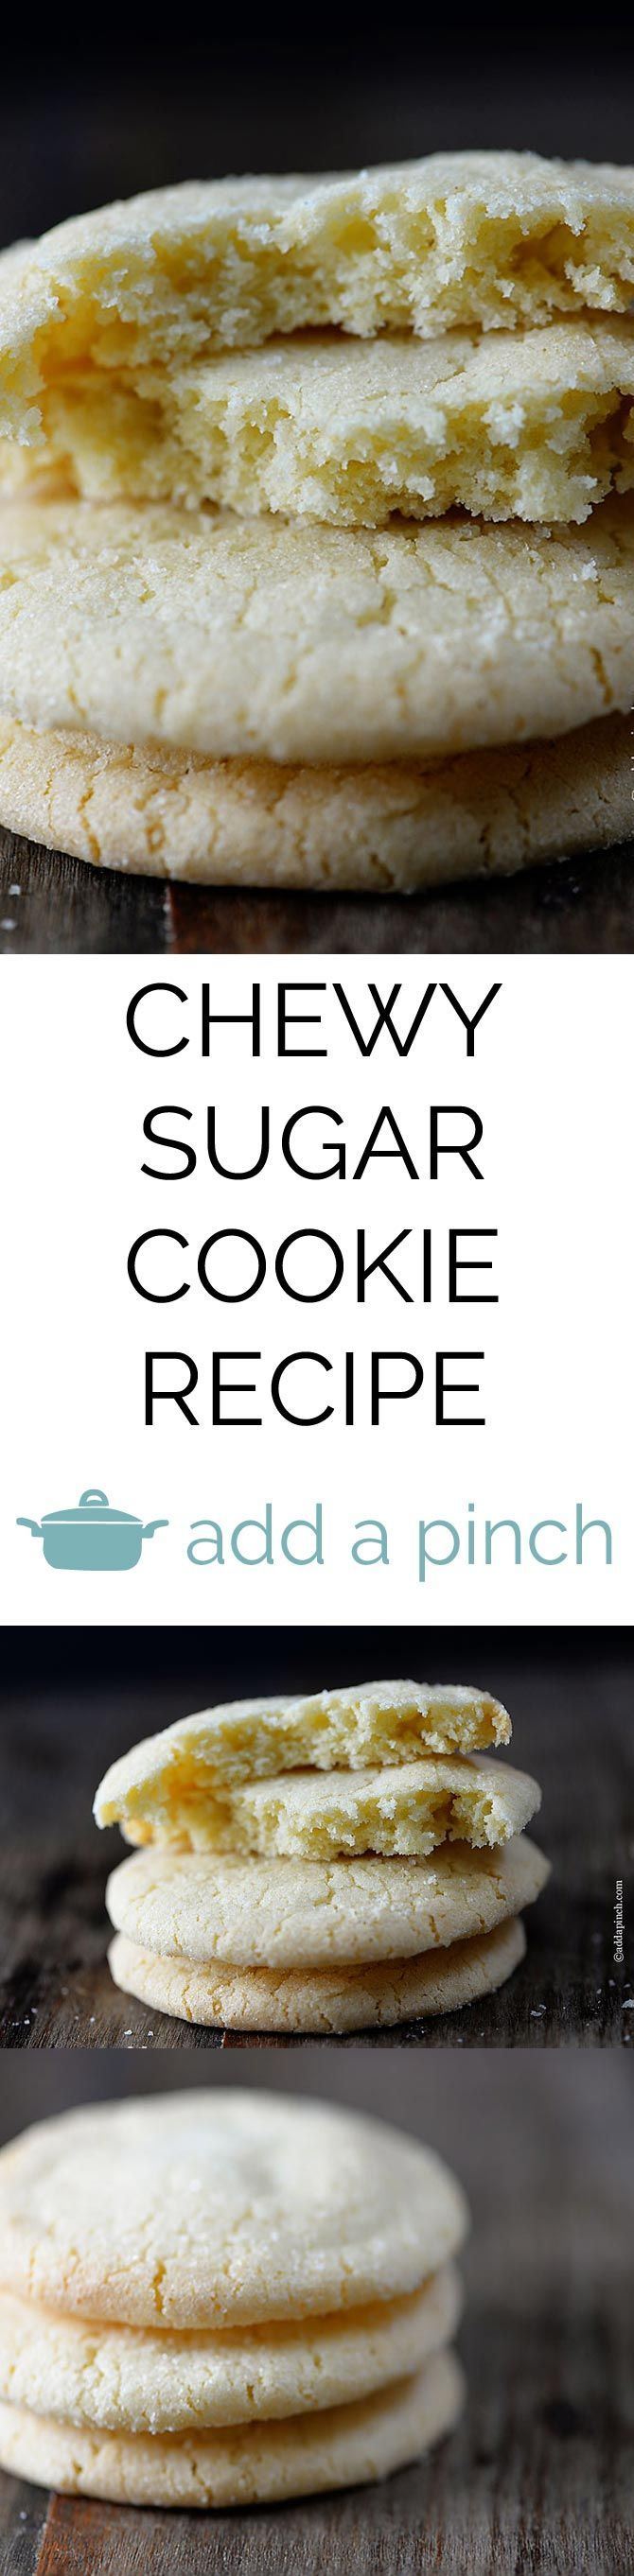 Sugar Cookie Recipe - This quick and easy sugar cookie recipe is an absolute favorite // addapinch.com